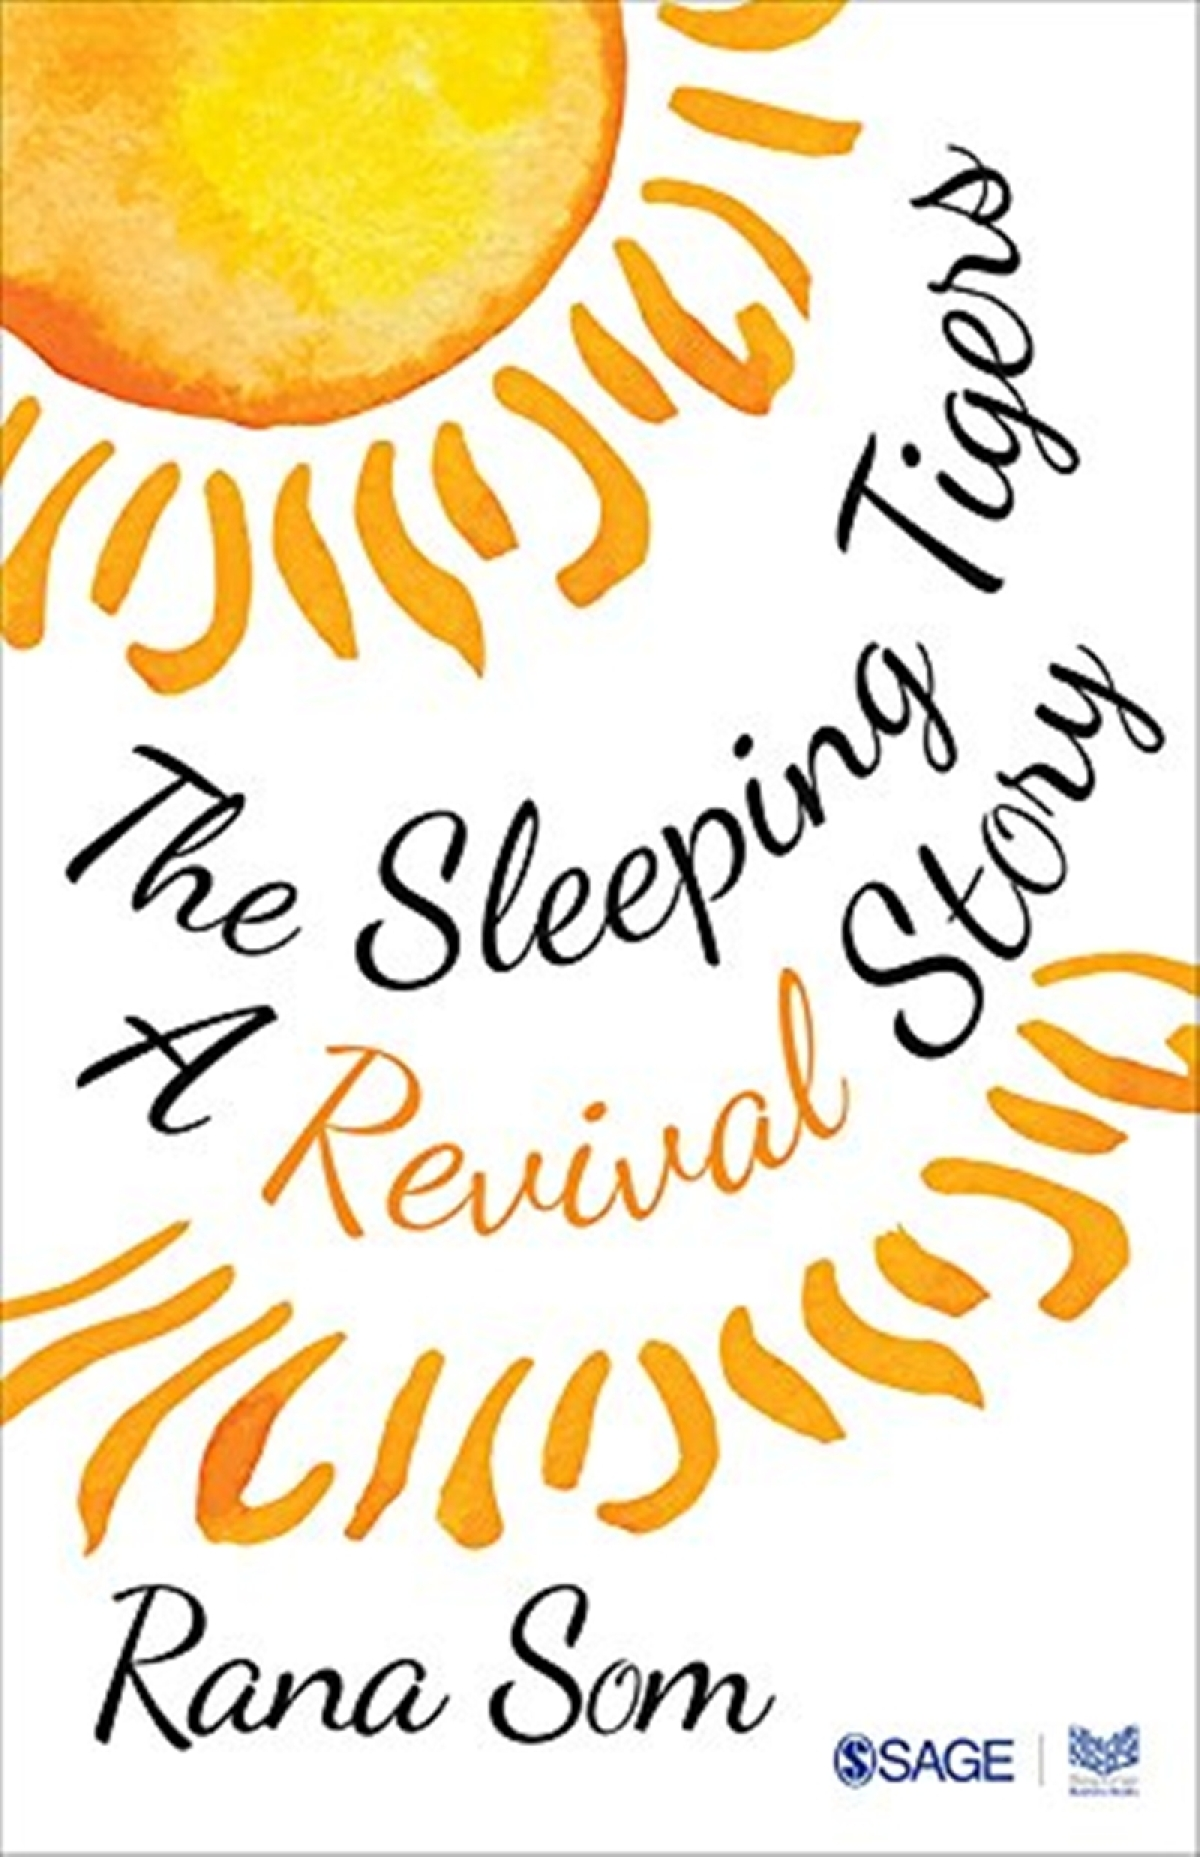 The Sleeping Tigers: A Revival Story by Rana Som-Review